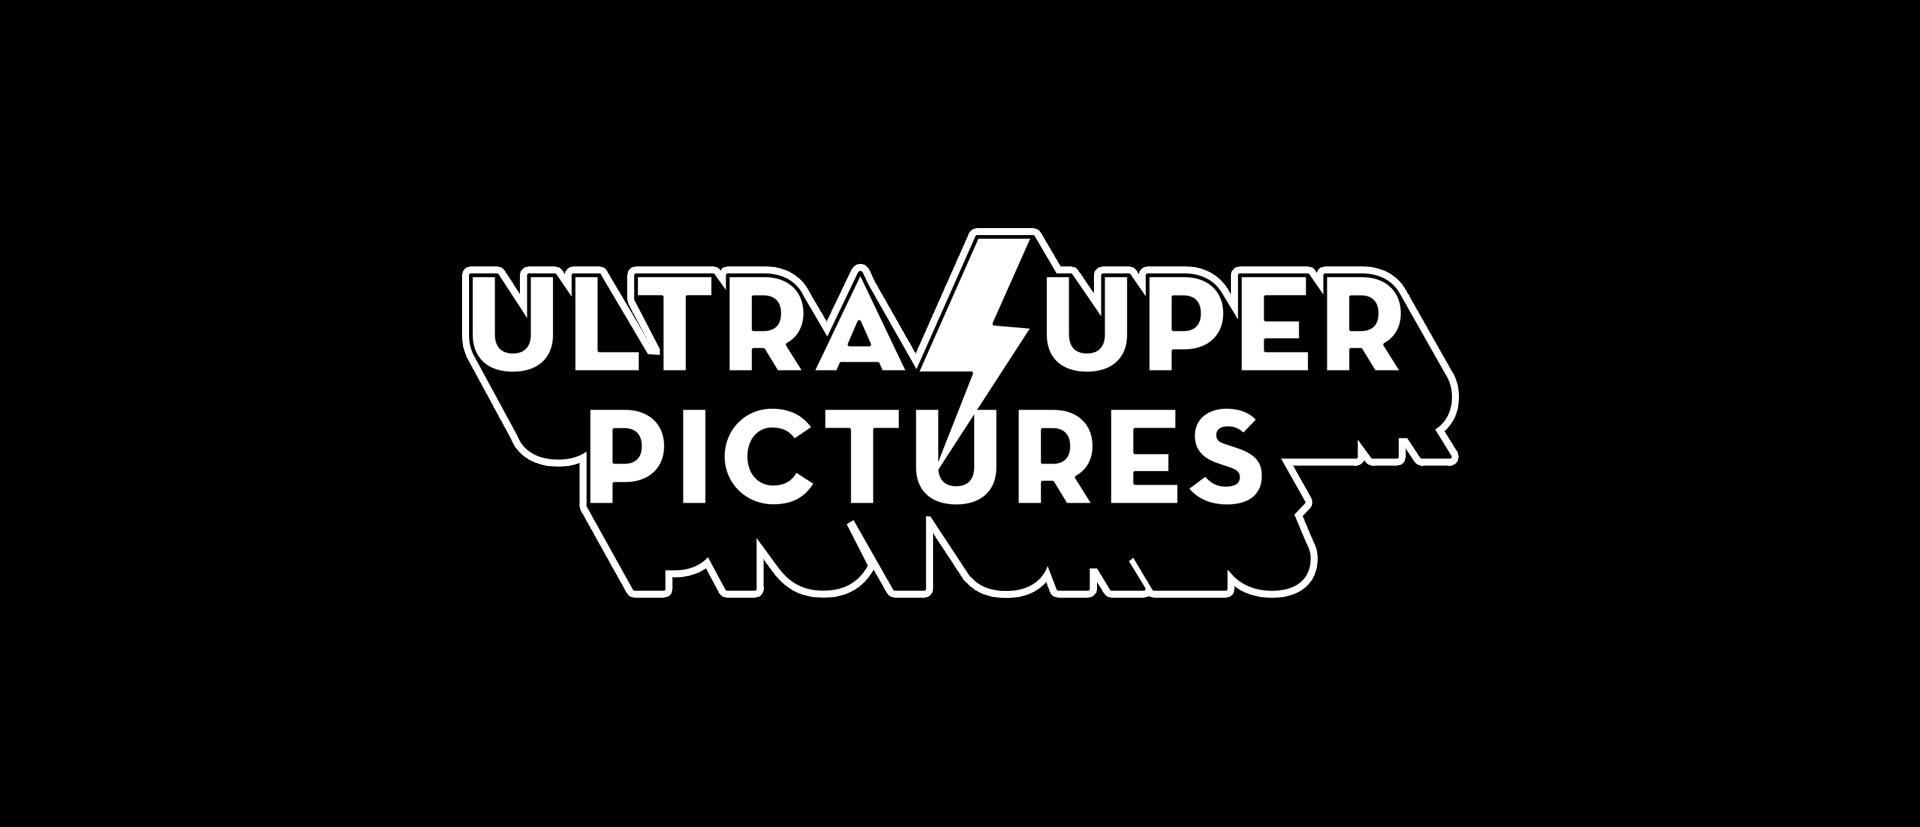 ULTRA SUPER PICTURES 2